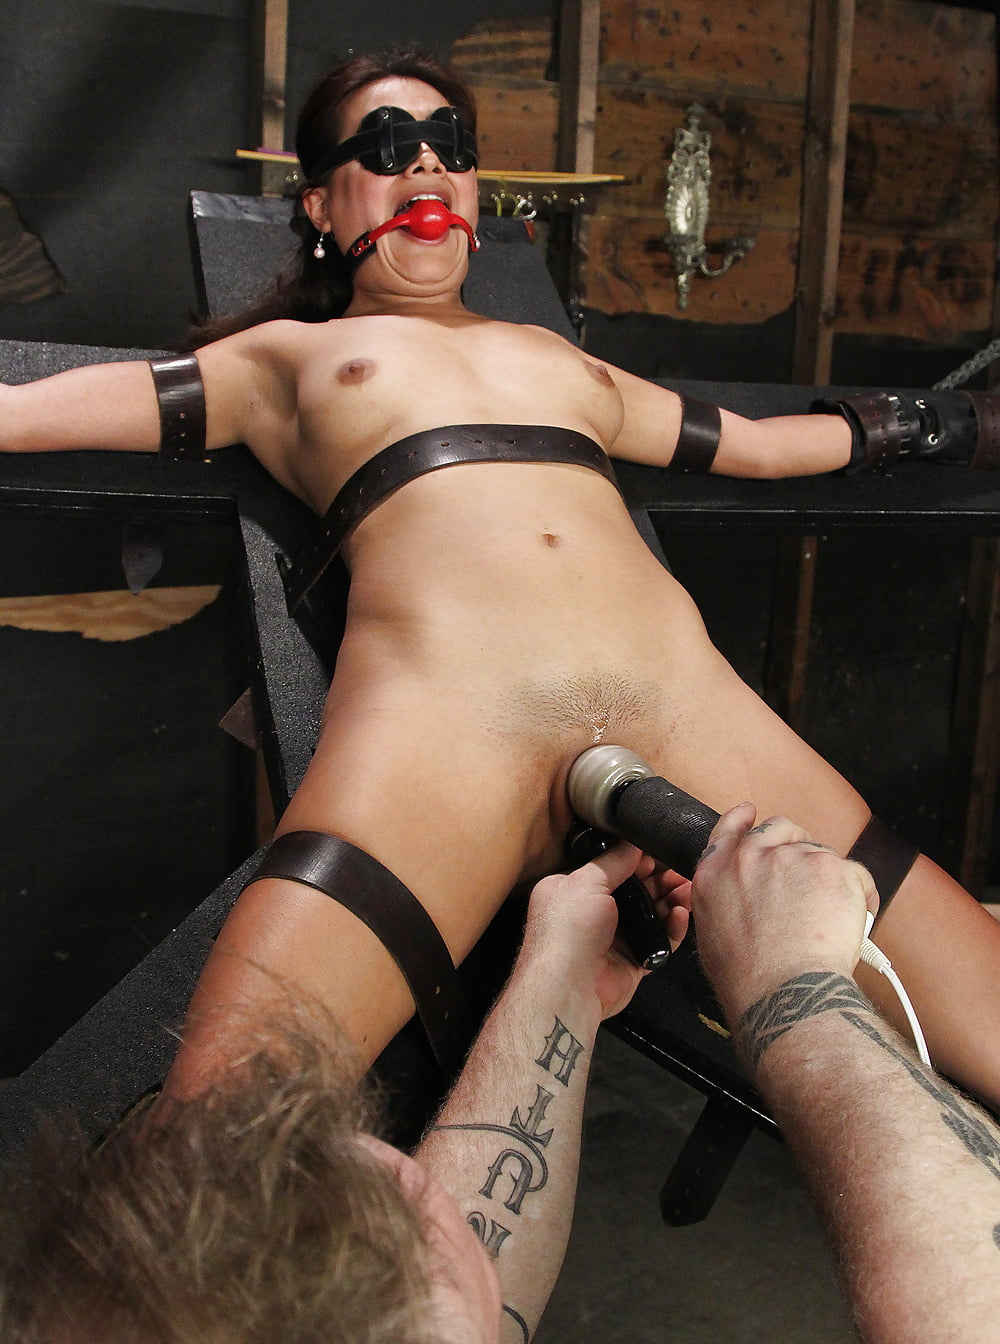 Women in bondage and orgasms